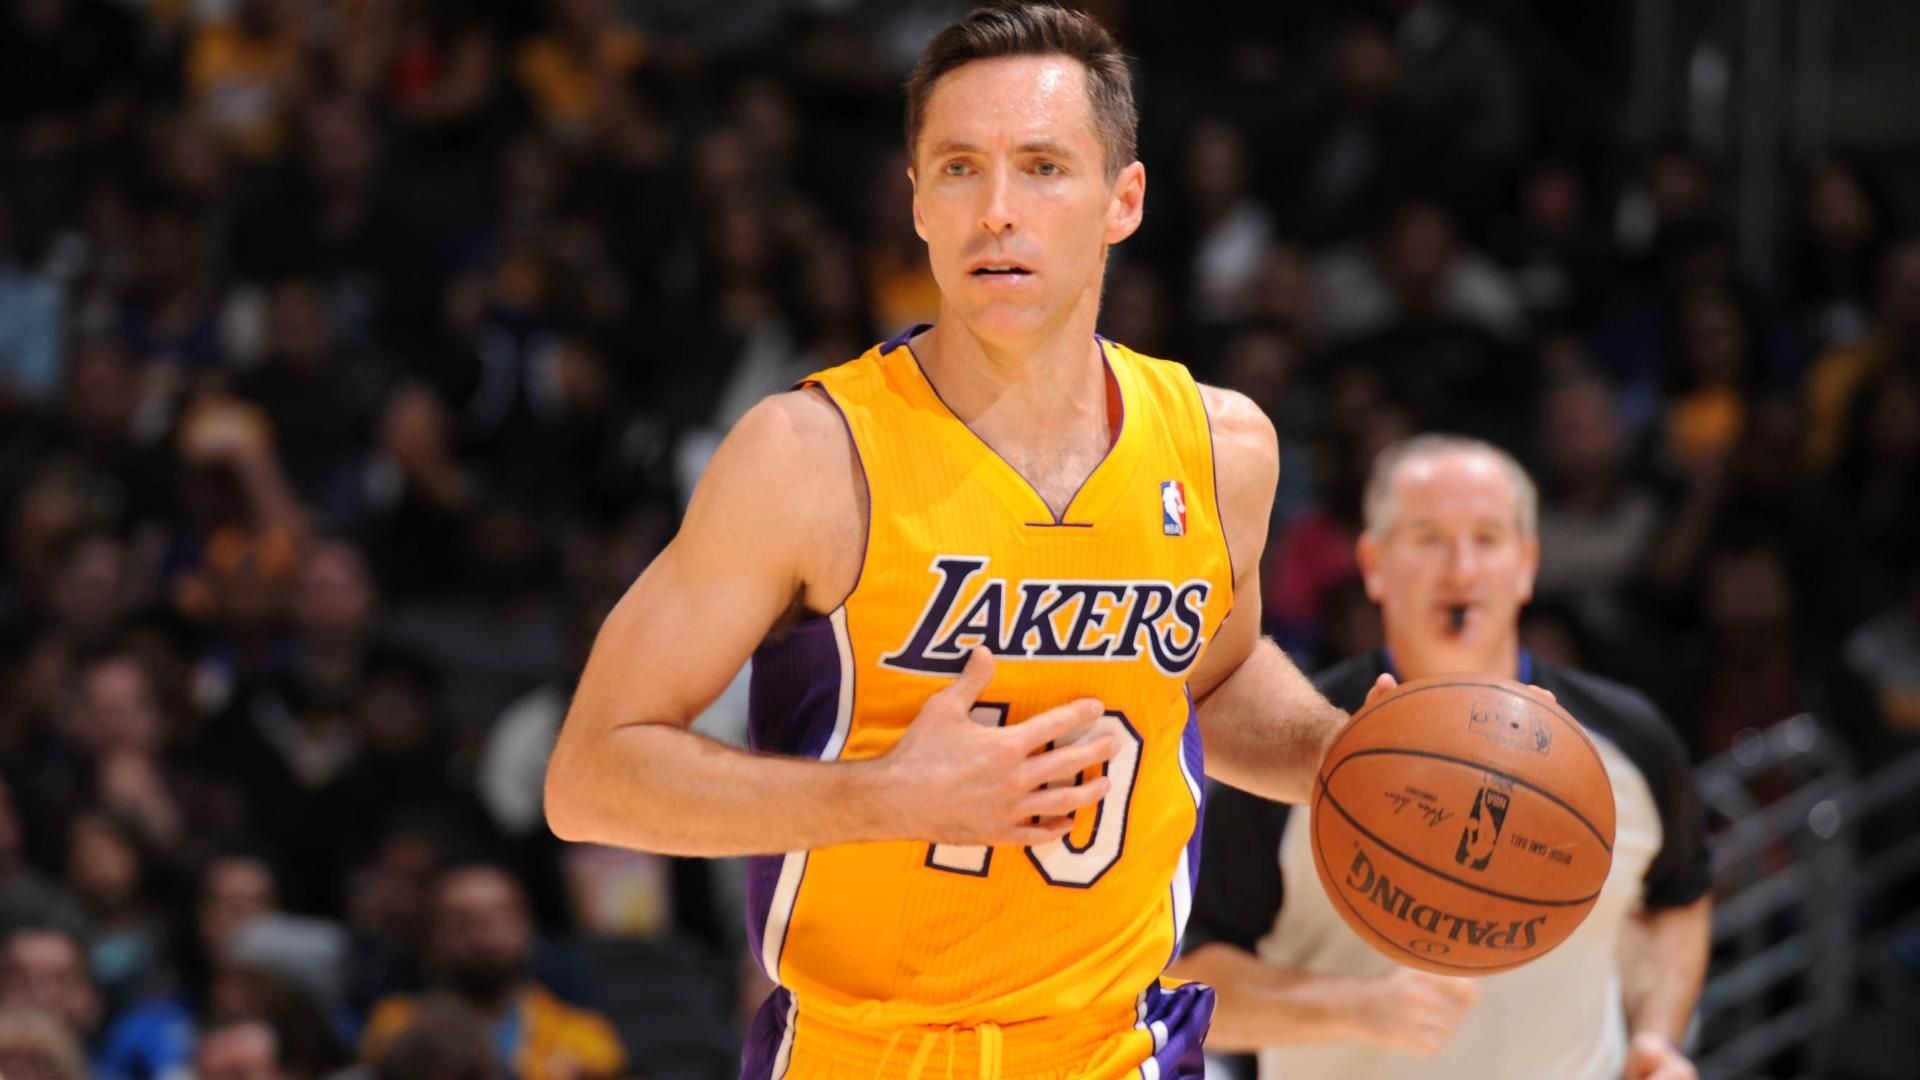 https://secure.espncdn.com/combiner/i?img=/media/motion/2015/0321/dm_150321_nba_steve_nash_sc_convo/dm_150321_nba_steve_nash_sc_convo.jpg